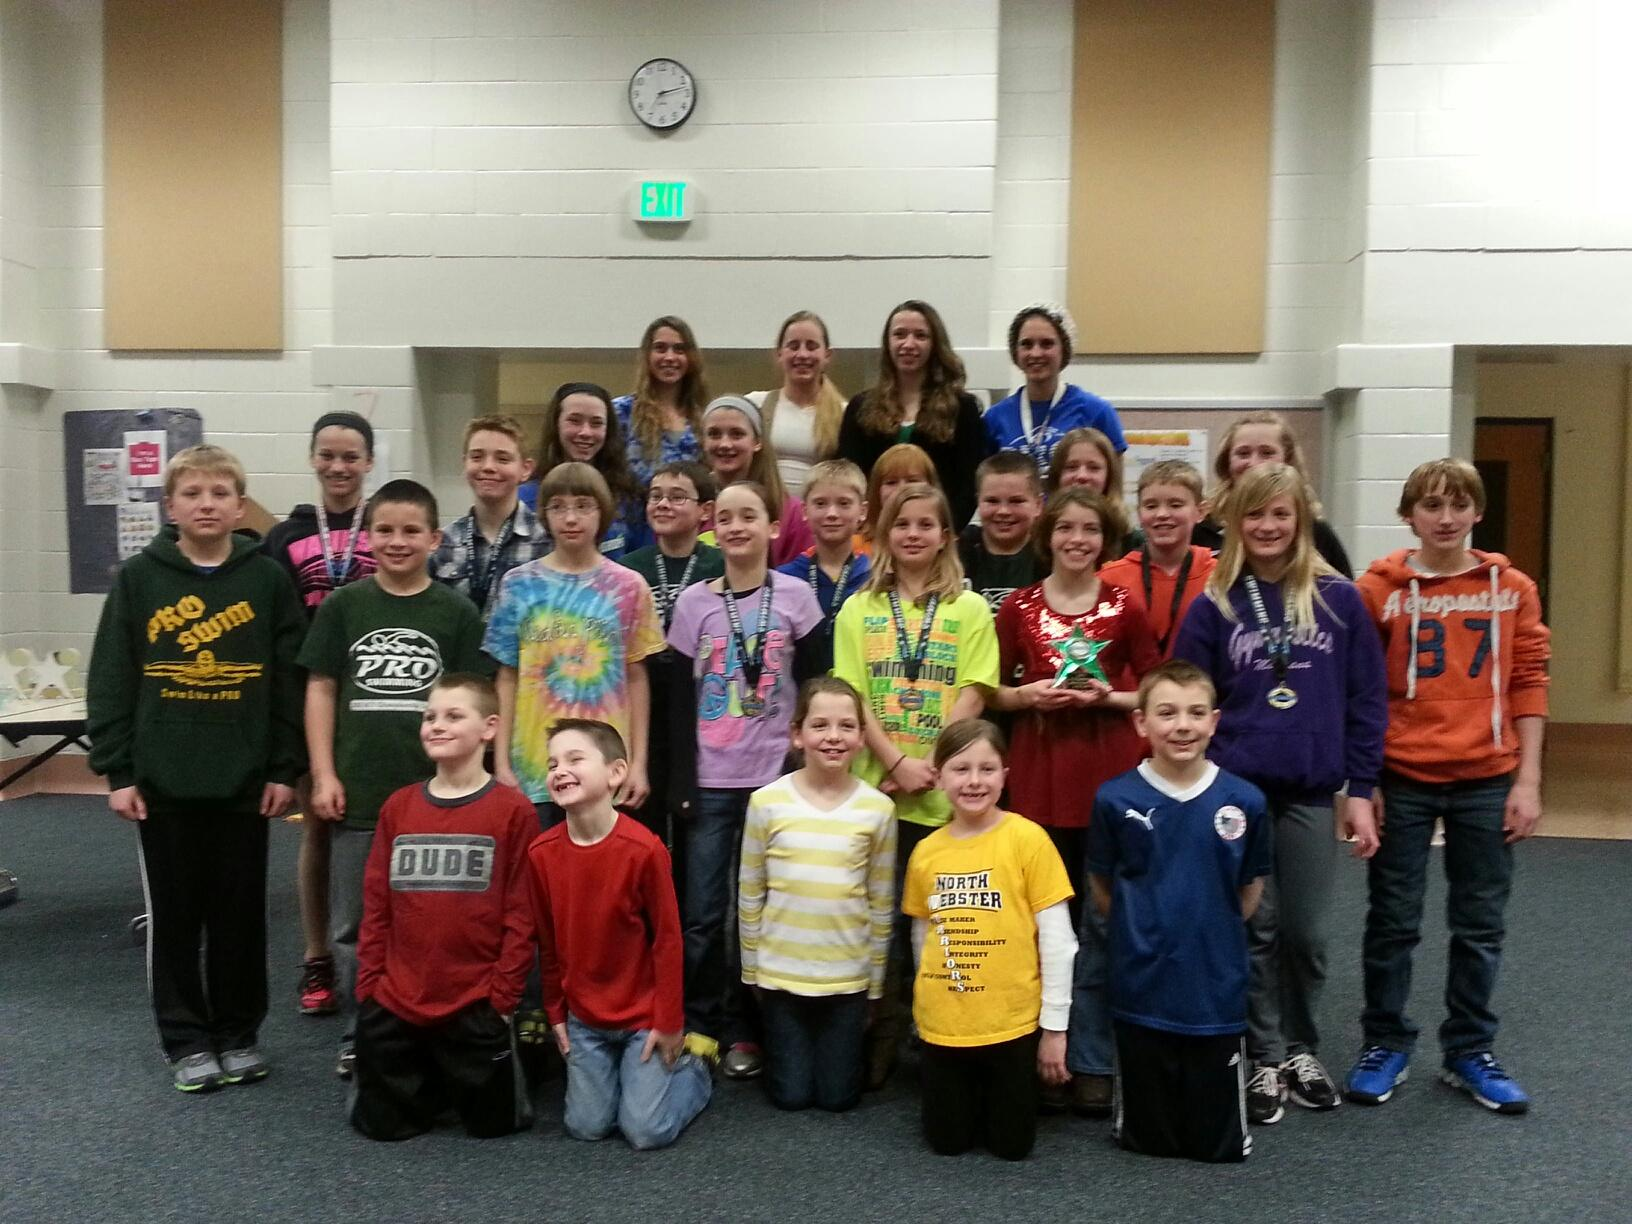 The PRO Swim Club, comprised of Wawasee area swimmers, announced its season awards Tuesday night. (Photo provided)